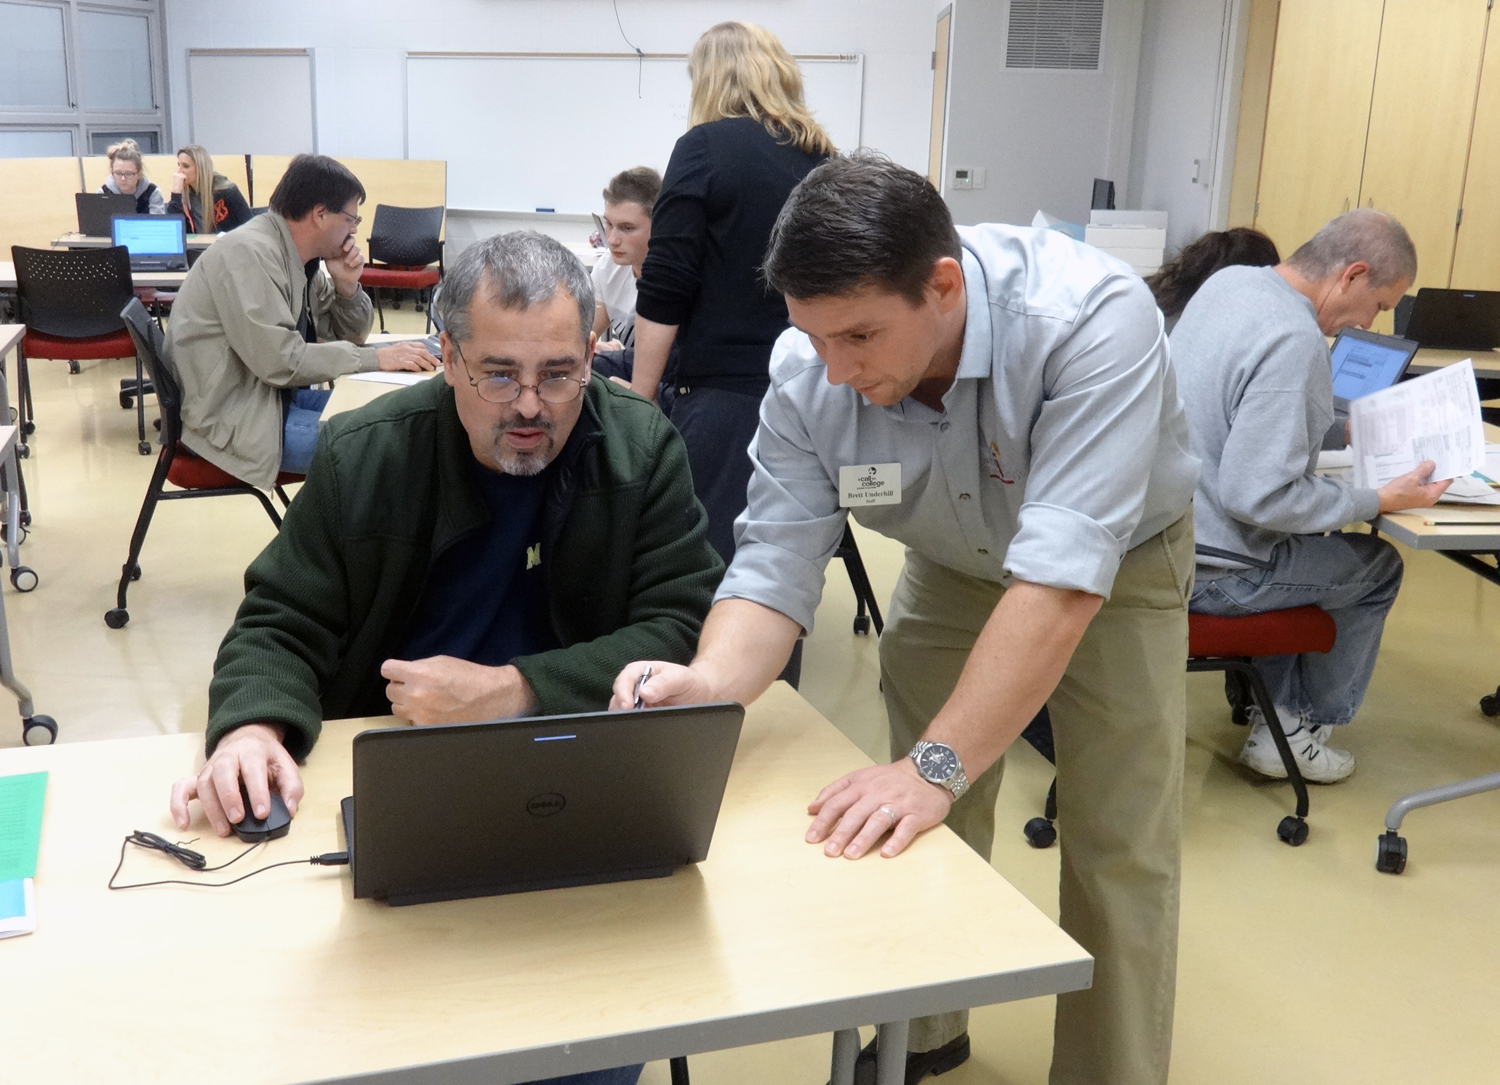 Mr. Underhill, who LOVES the FAFSA, helps a father with his submission